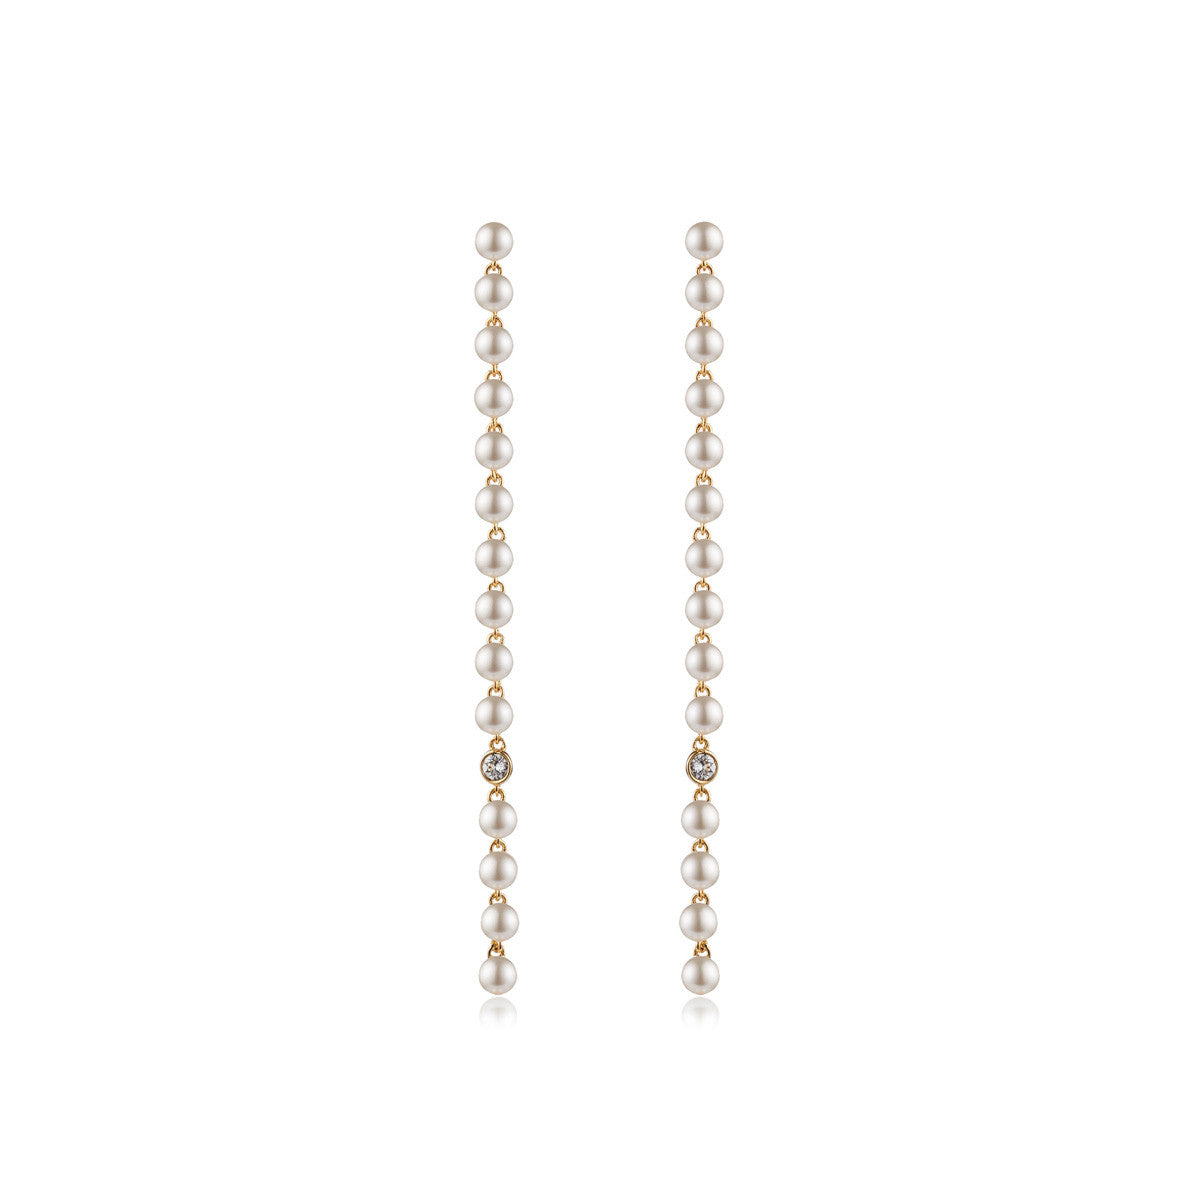 Solid brass, 18K gold plated Diana drop earrings with Swarovski® pearls and crystal – front